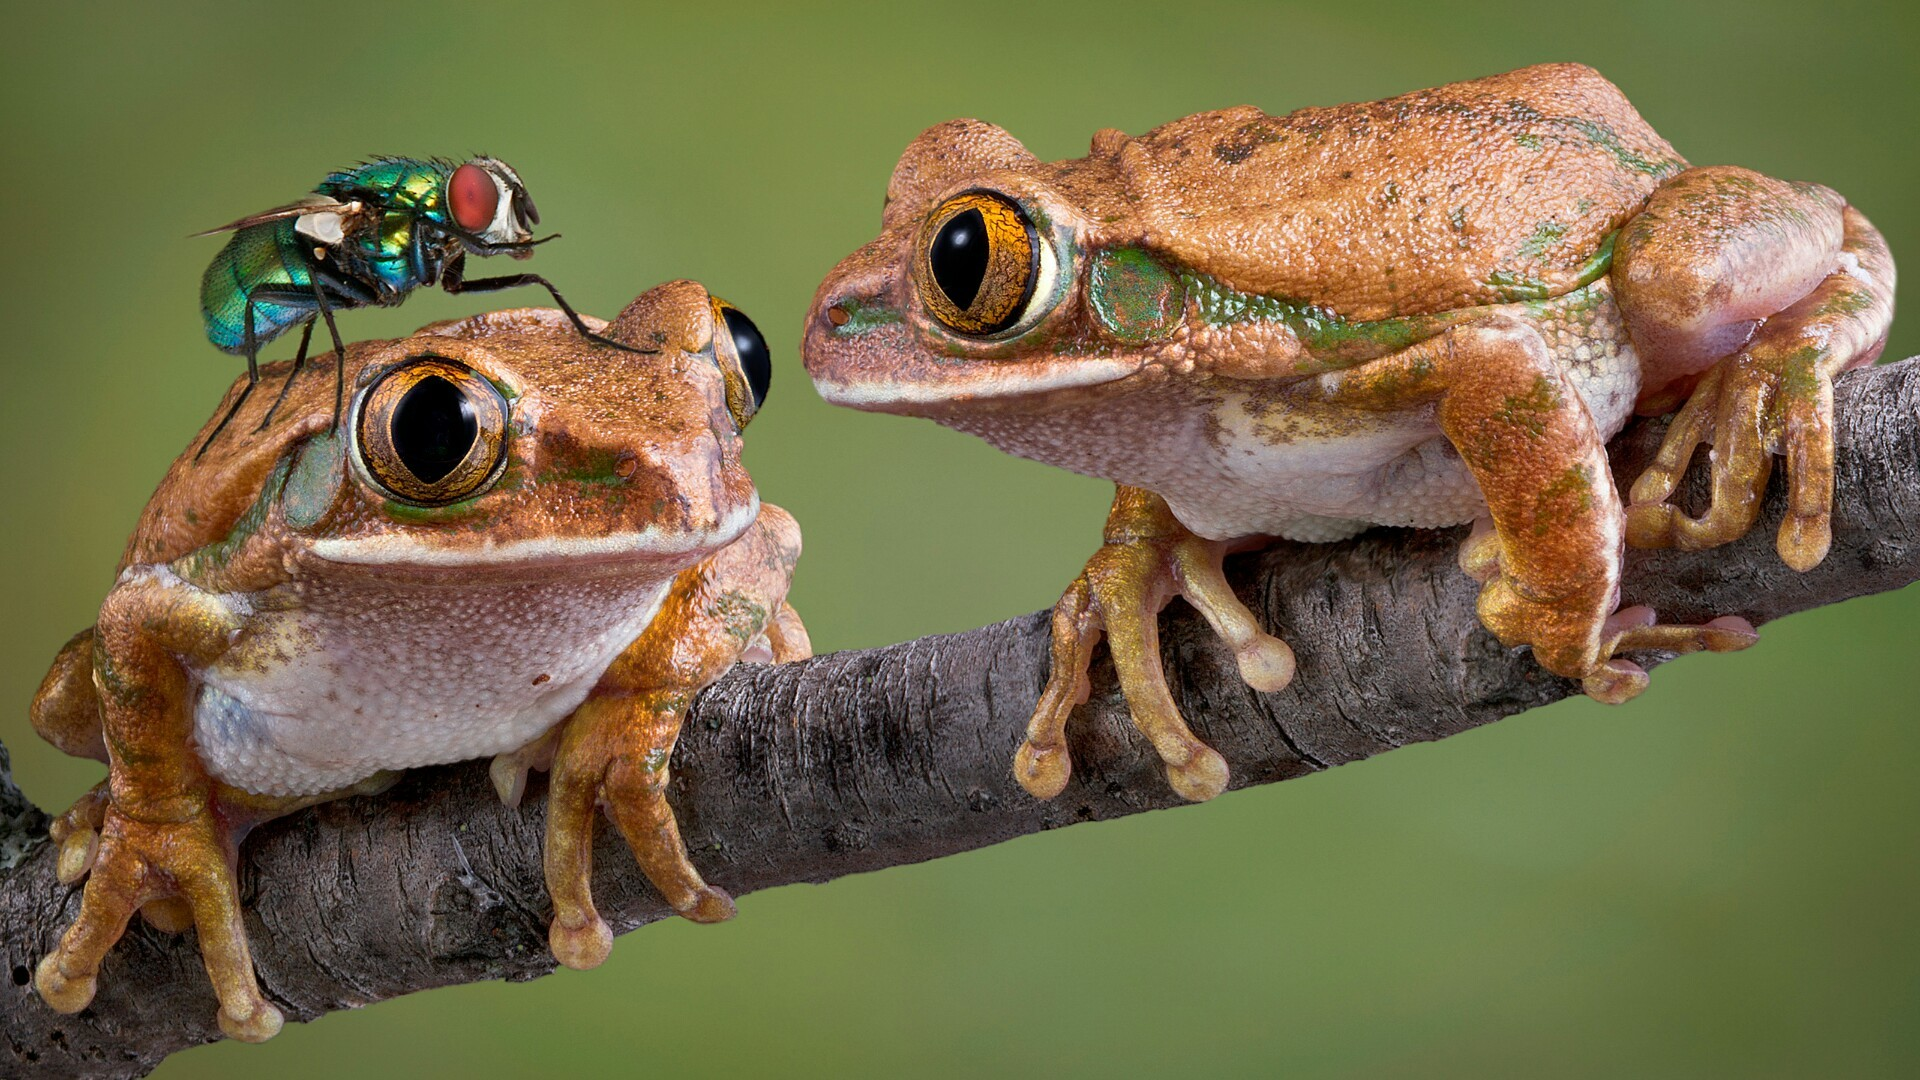 Res: 1920x1080, Funny Frogs Wallpaper | Wallpaper Studio 10 | Tens of thousands HD and  UltraHD wallpapers for Android, Windows and Xbox